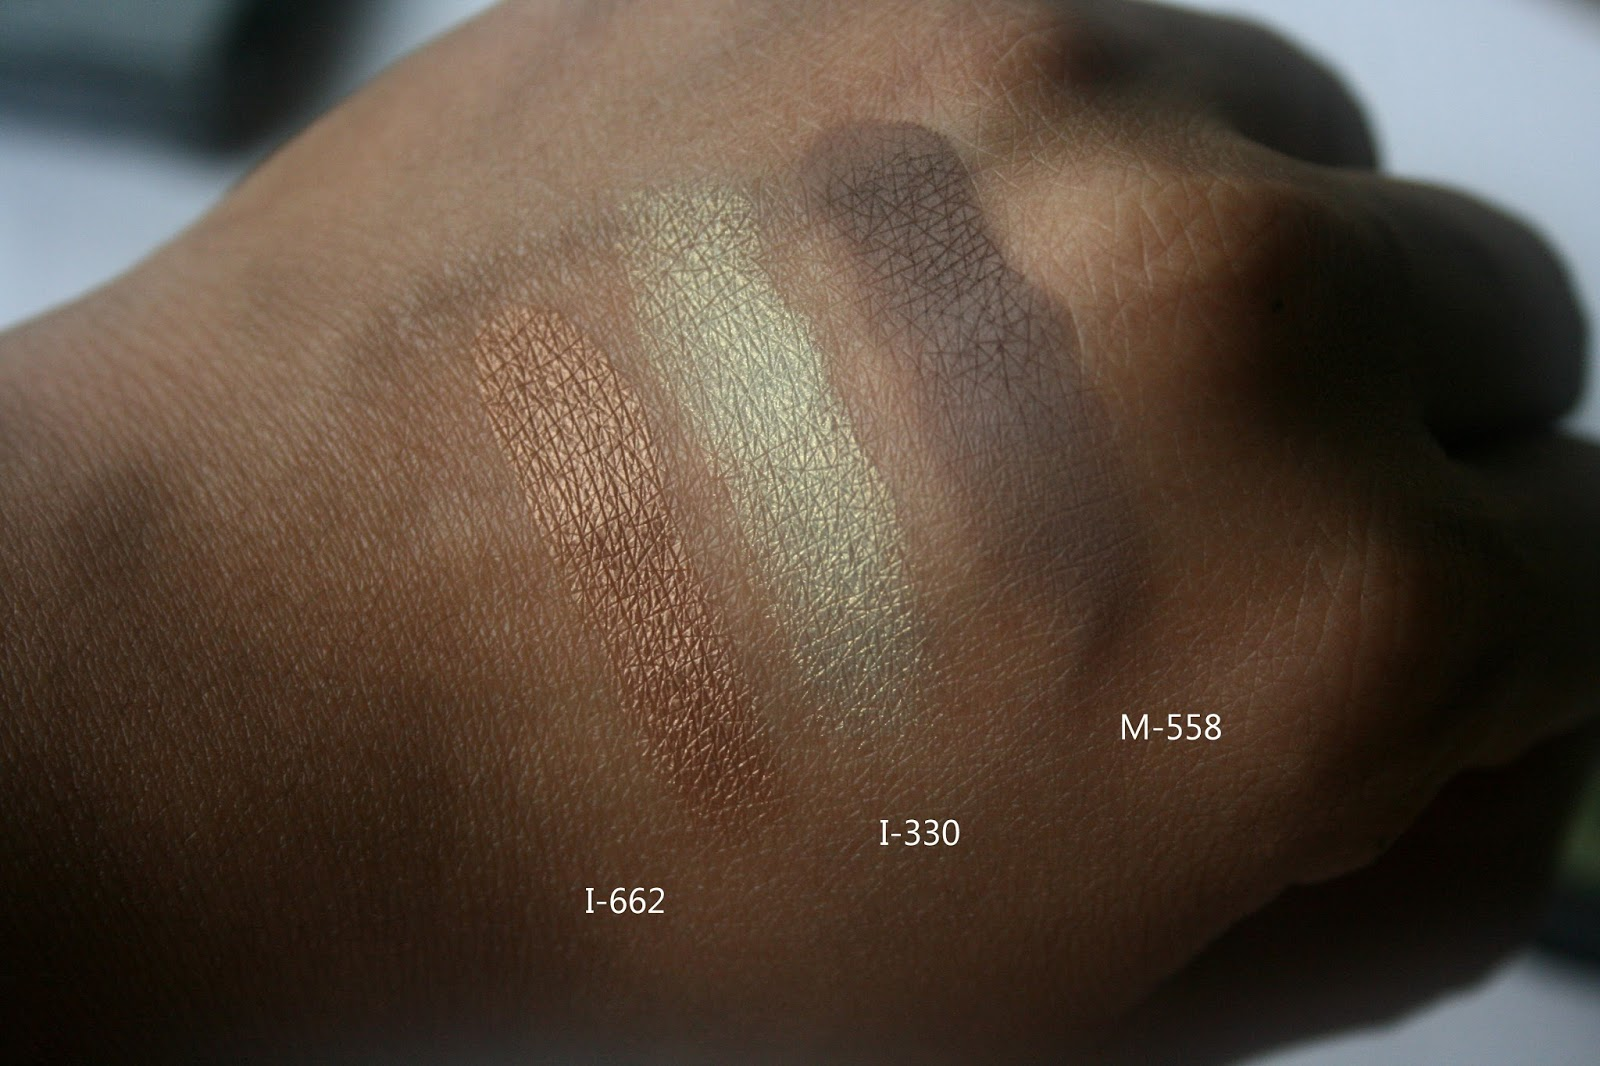 make up for ever artist eye shadows in i662, m558, i330 swatches